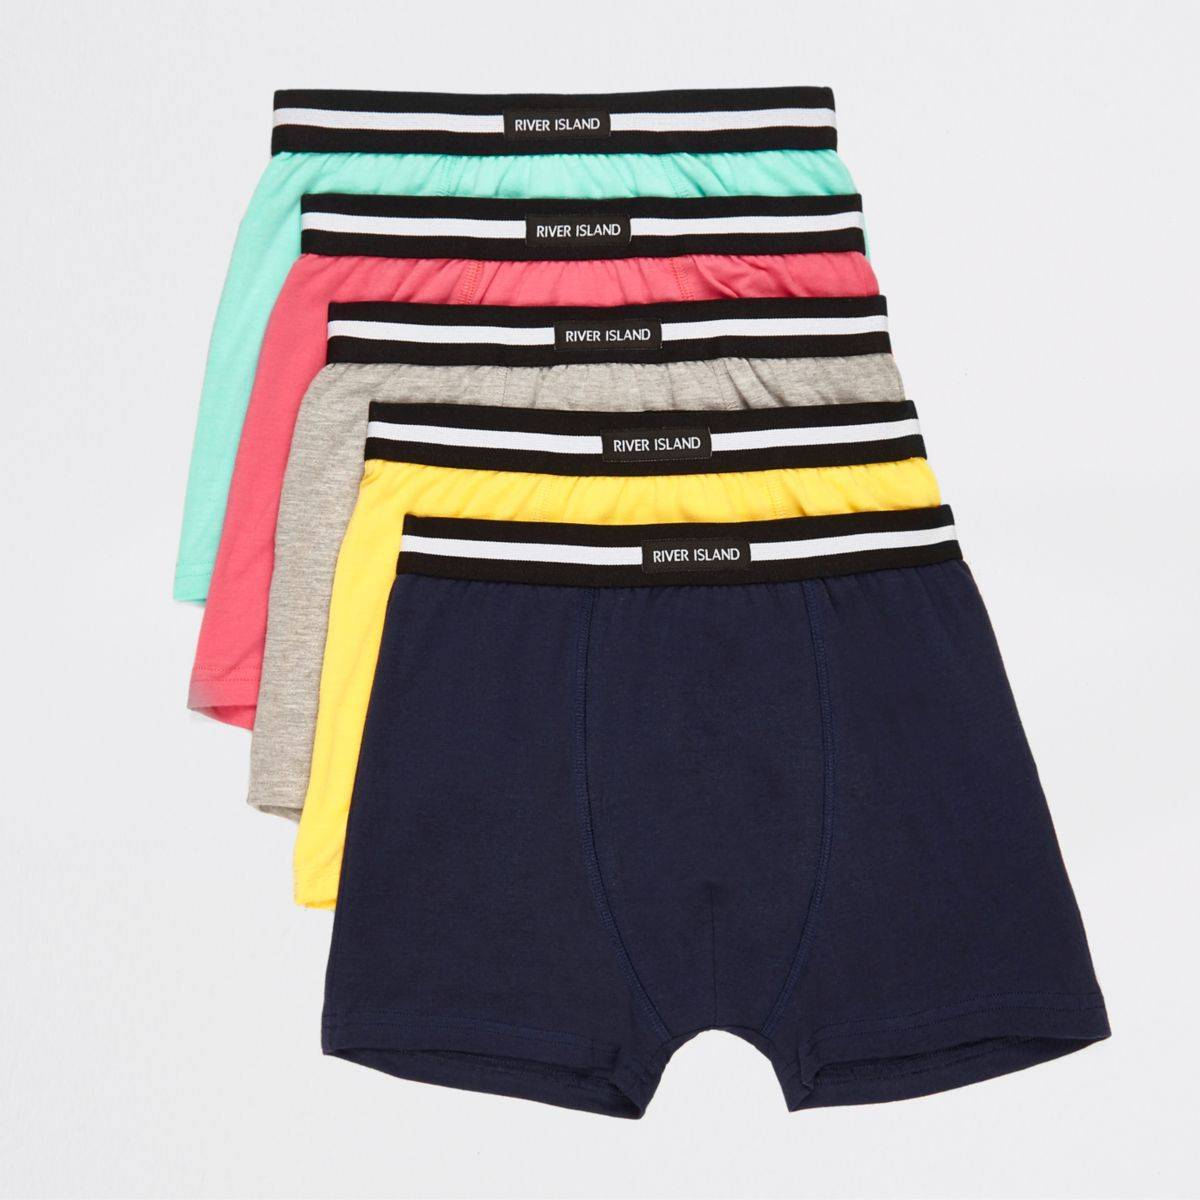 River Island Boys Green brights boxers multipack (Size 9 - 10 Years)